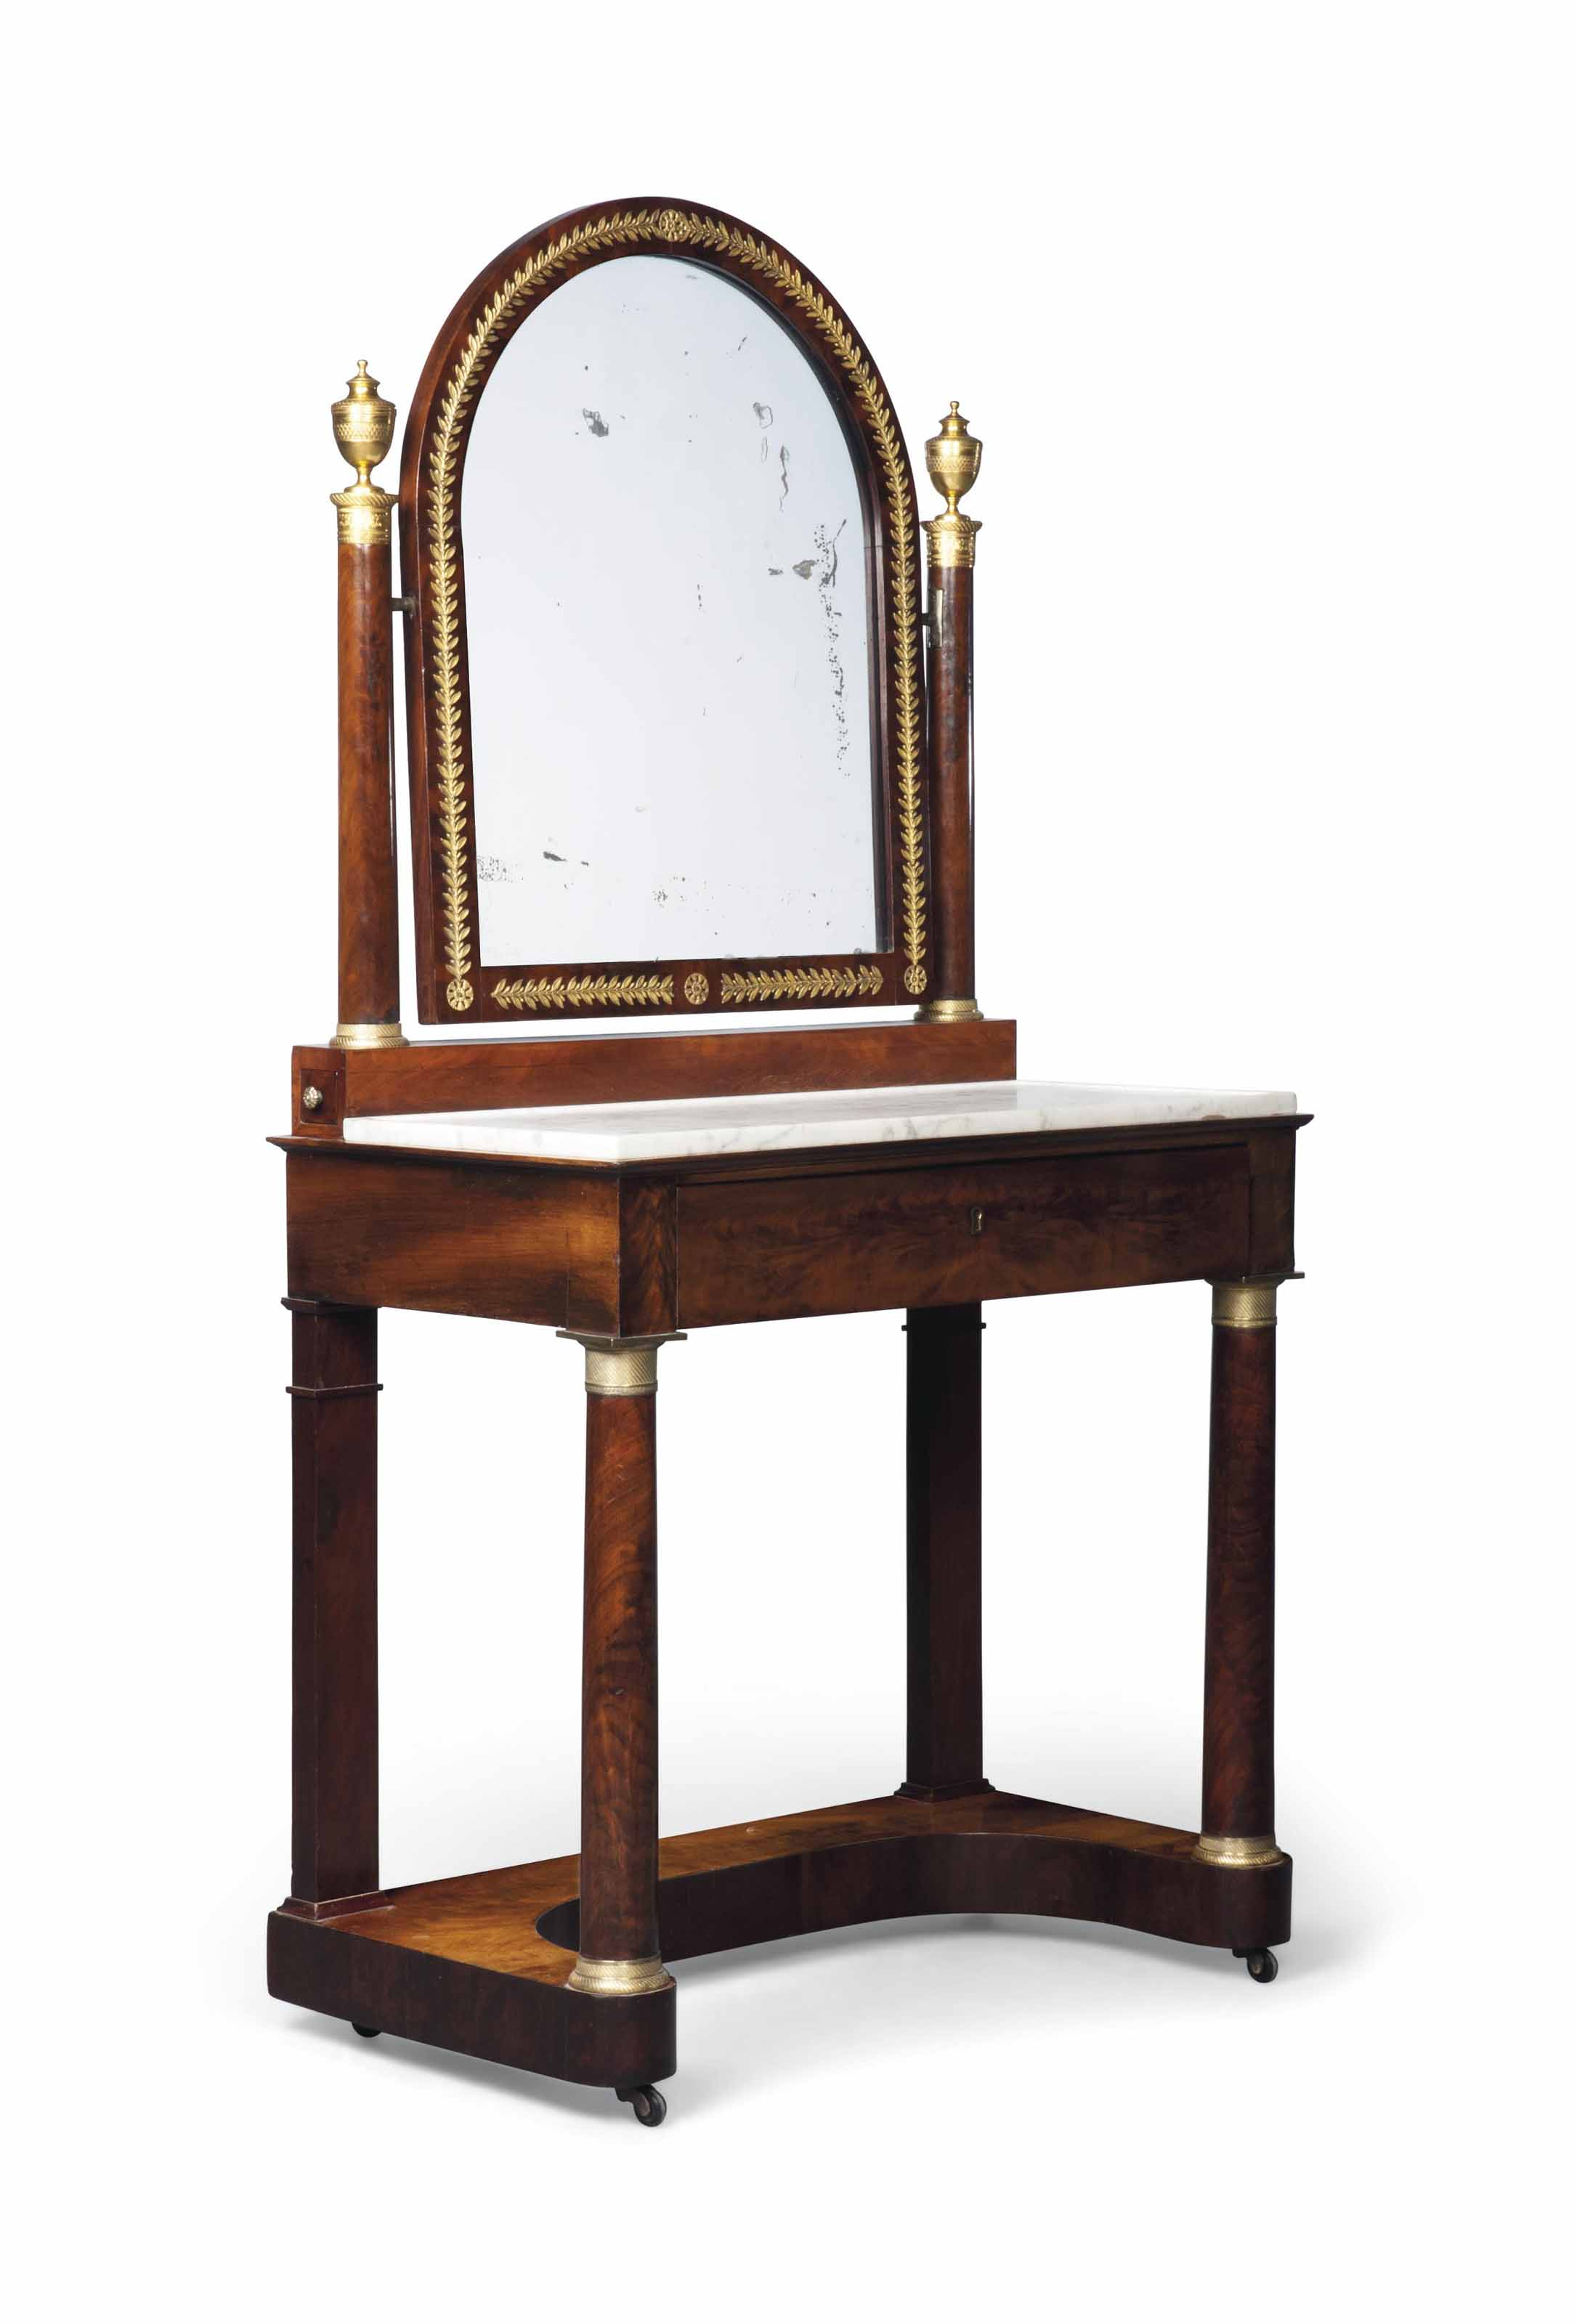 AN EMPIRE ORMOLU-MOUNTED MAHOGANY DRESSING-TABLE